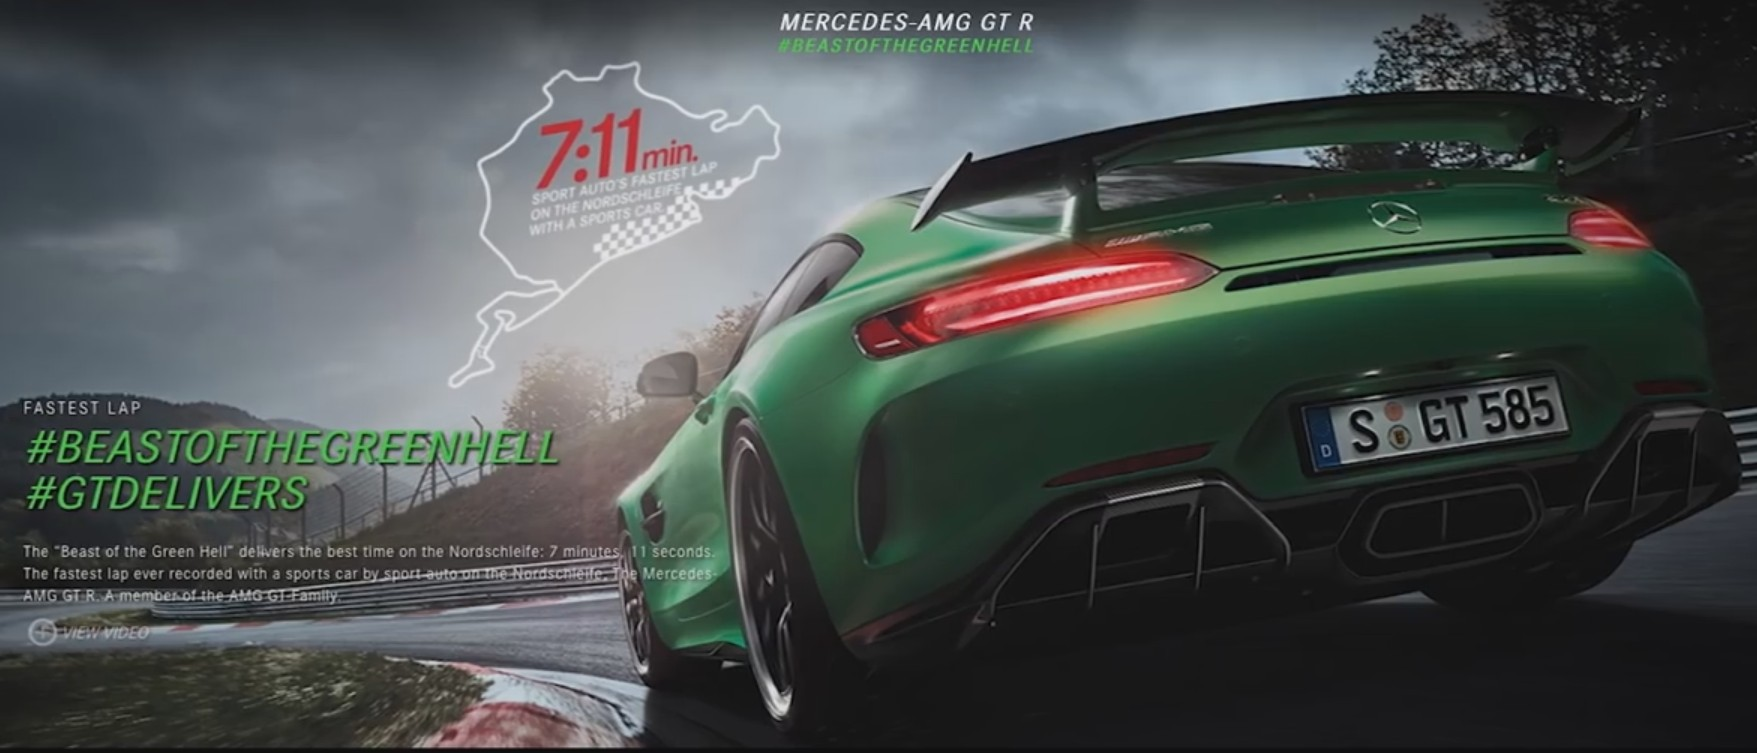 Documentary Series Dives Into The Mercedes Amg Gt R And Its Ties To The Nurburgring